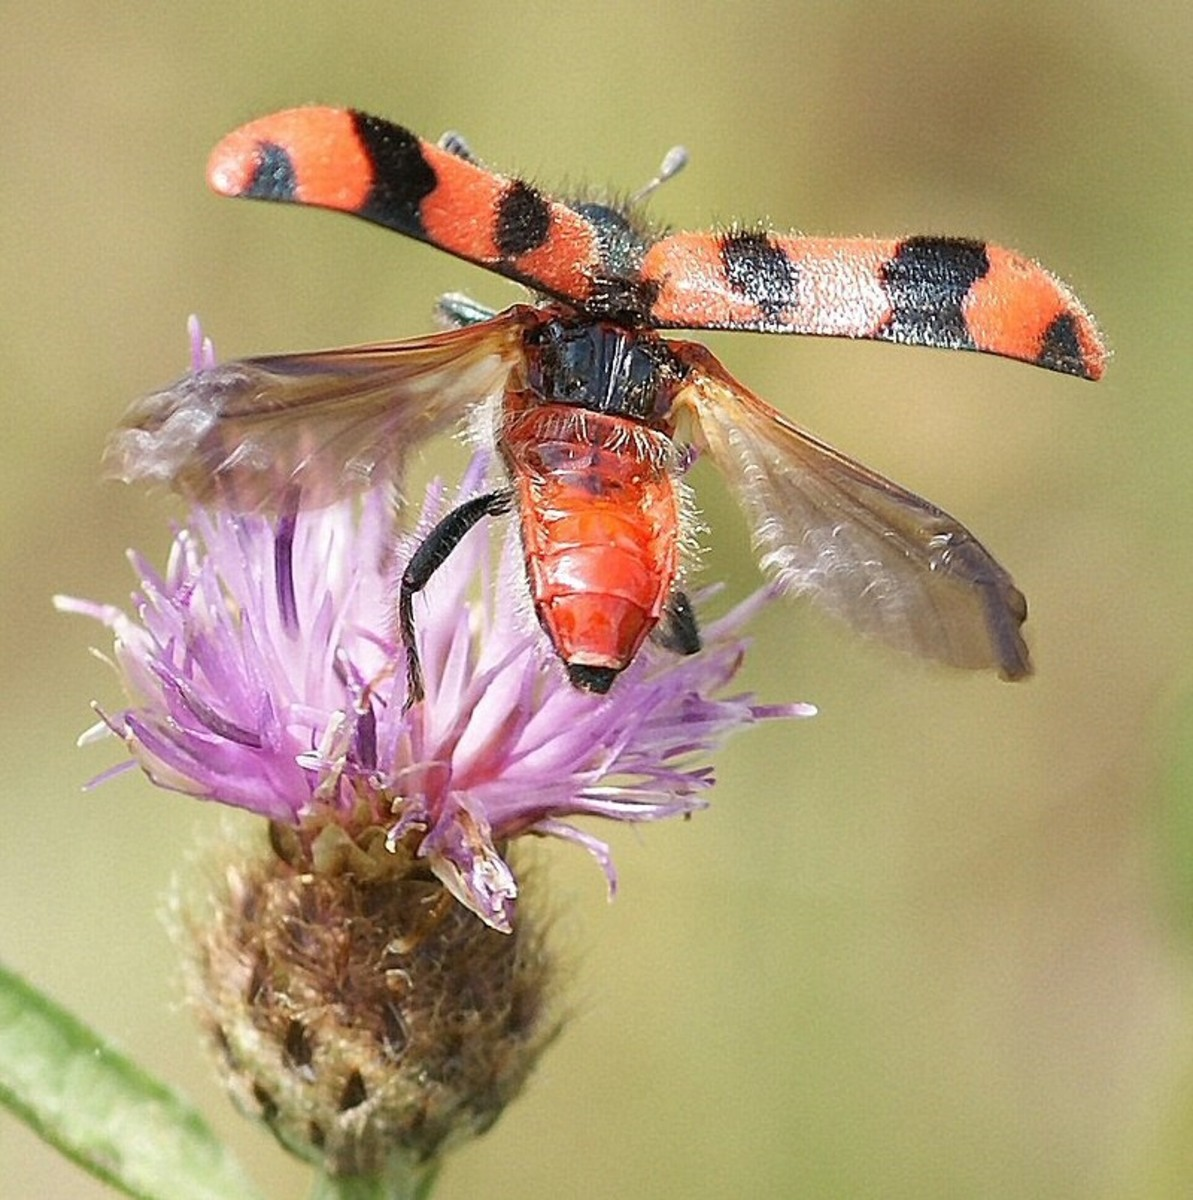 This Soldier Beetle is preparing for taking-off. The back wings of a beetle are transparent. This beetle uses its rear wings to fly while the rigid front wings are raised up out of the way.